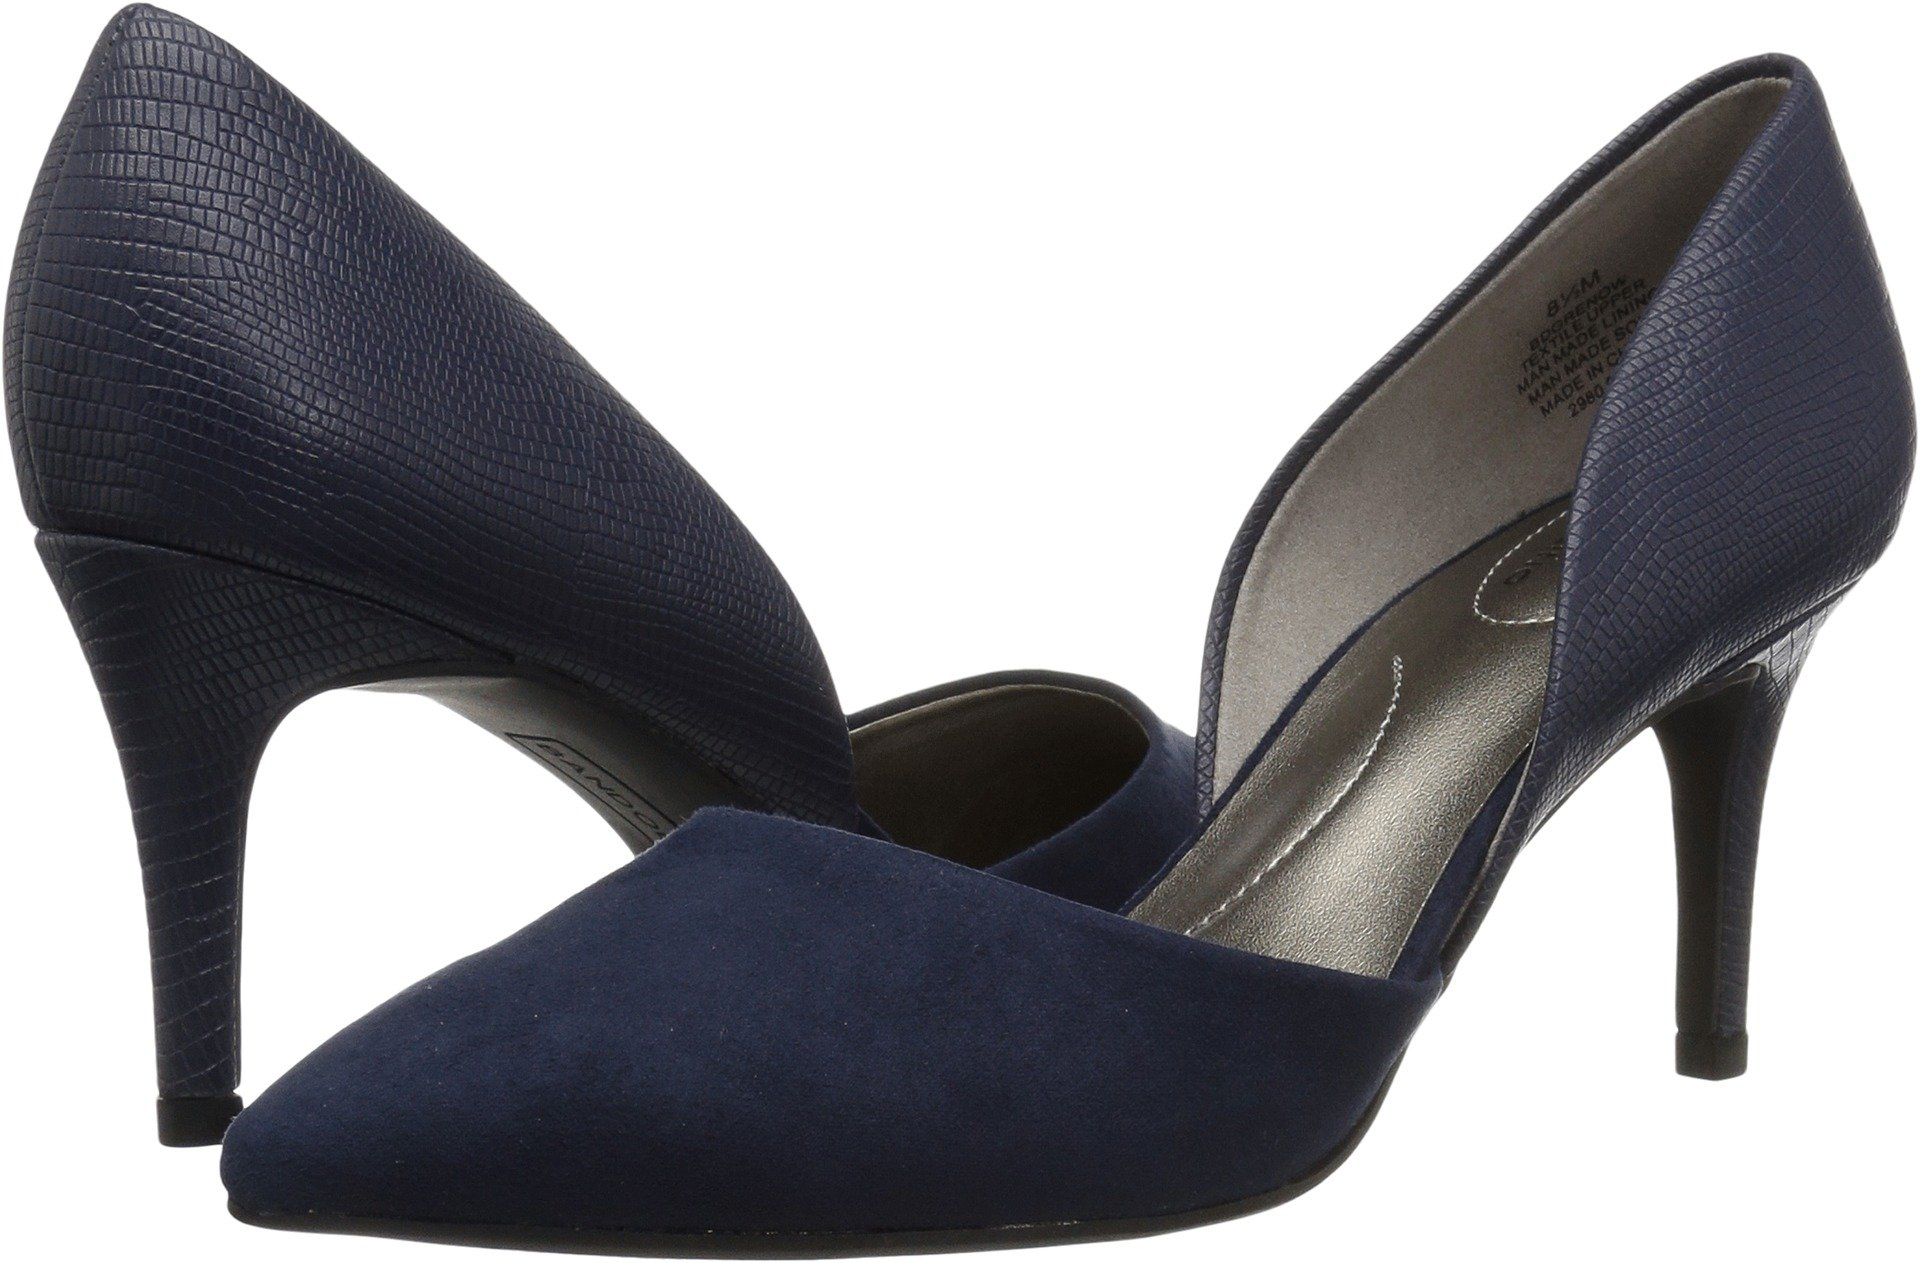 Bandolino Women's Grenow Pump, Navy, 8 M US